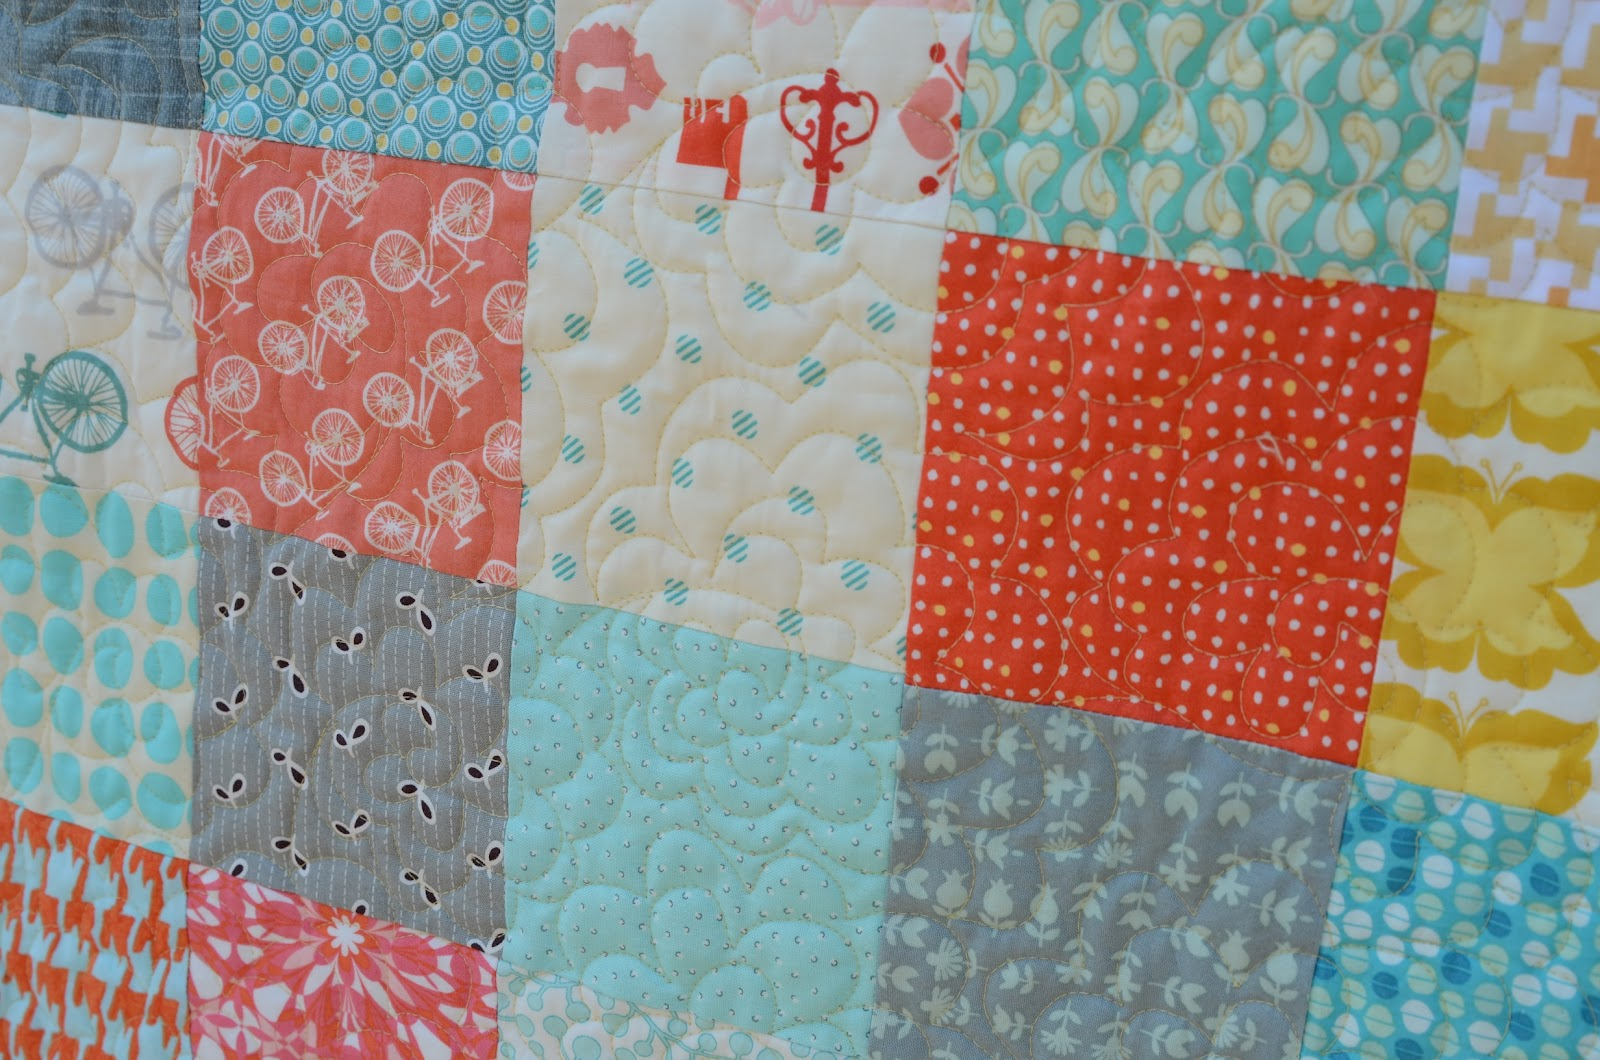 Hyacinth Quilt Designs: A Simple Patchwork quilt : square patchwork quilt - Adamdwight.com